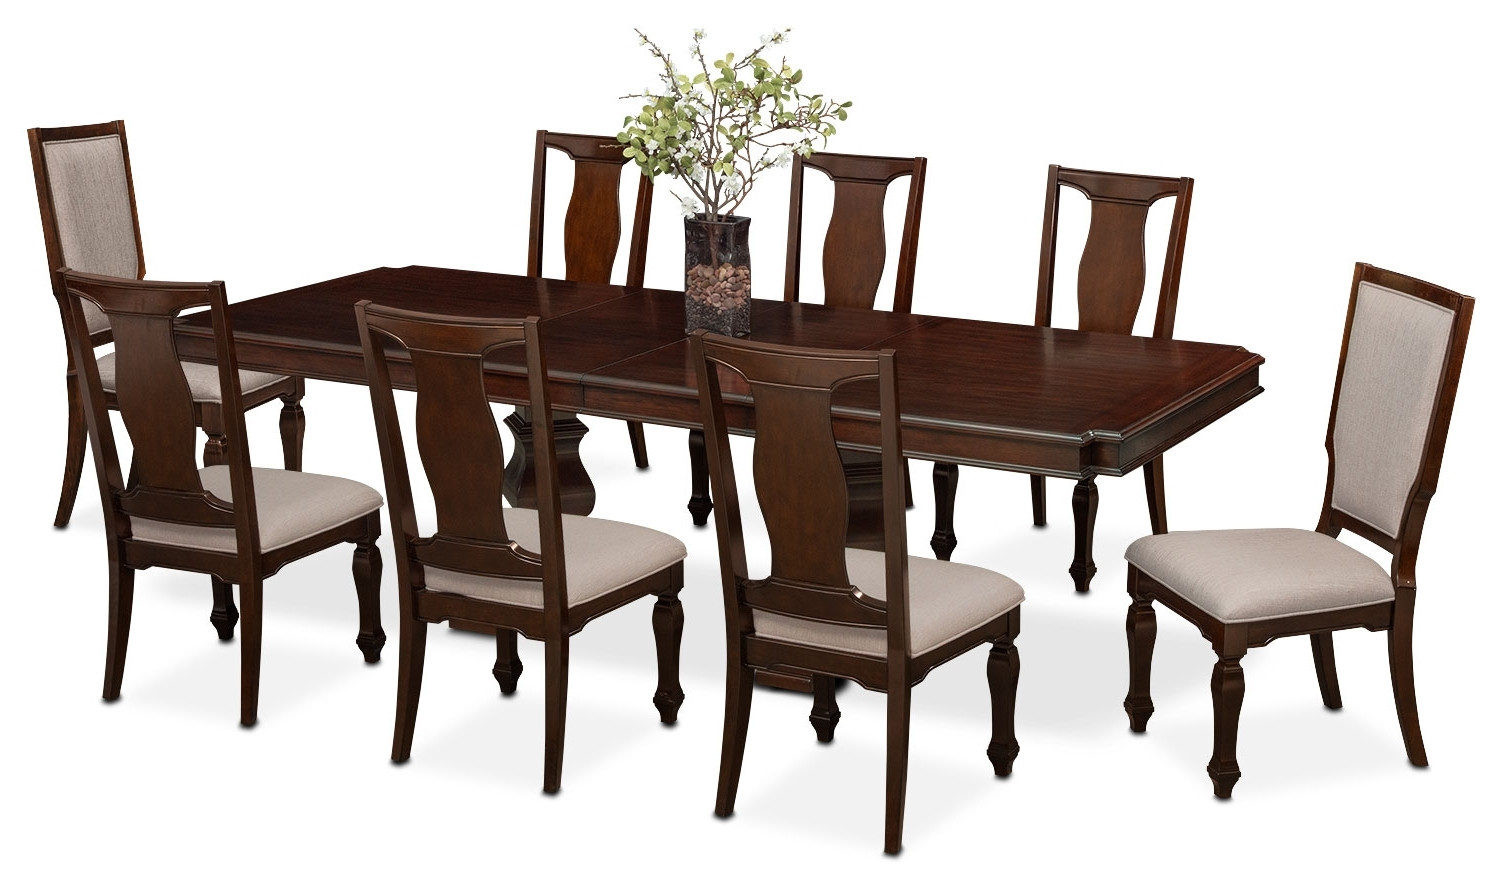 Vienna Dining Table, 6 Side Chairs And 2 Upholstered Side Chairs With Famous Vienna Dining Tables (Gallery 1 of 25)